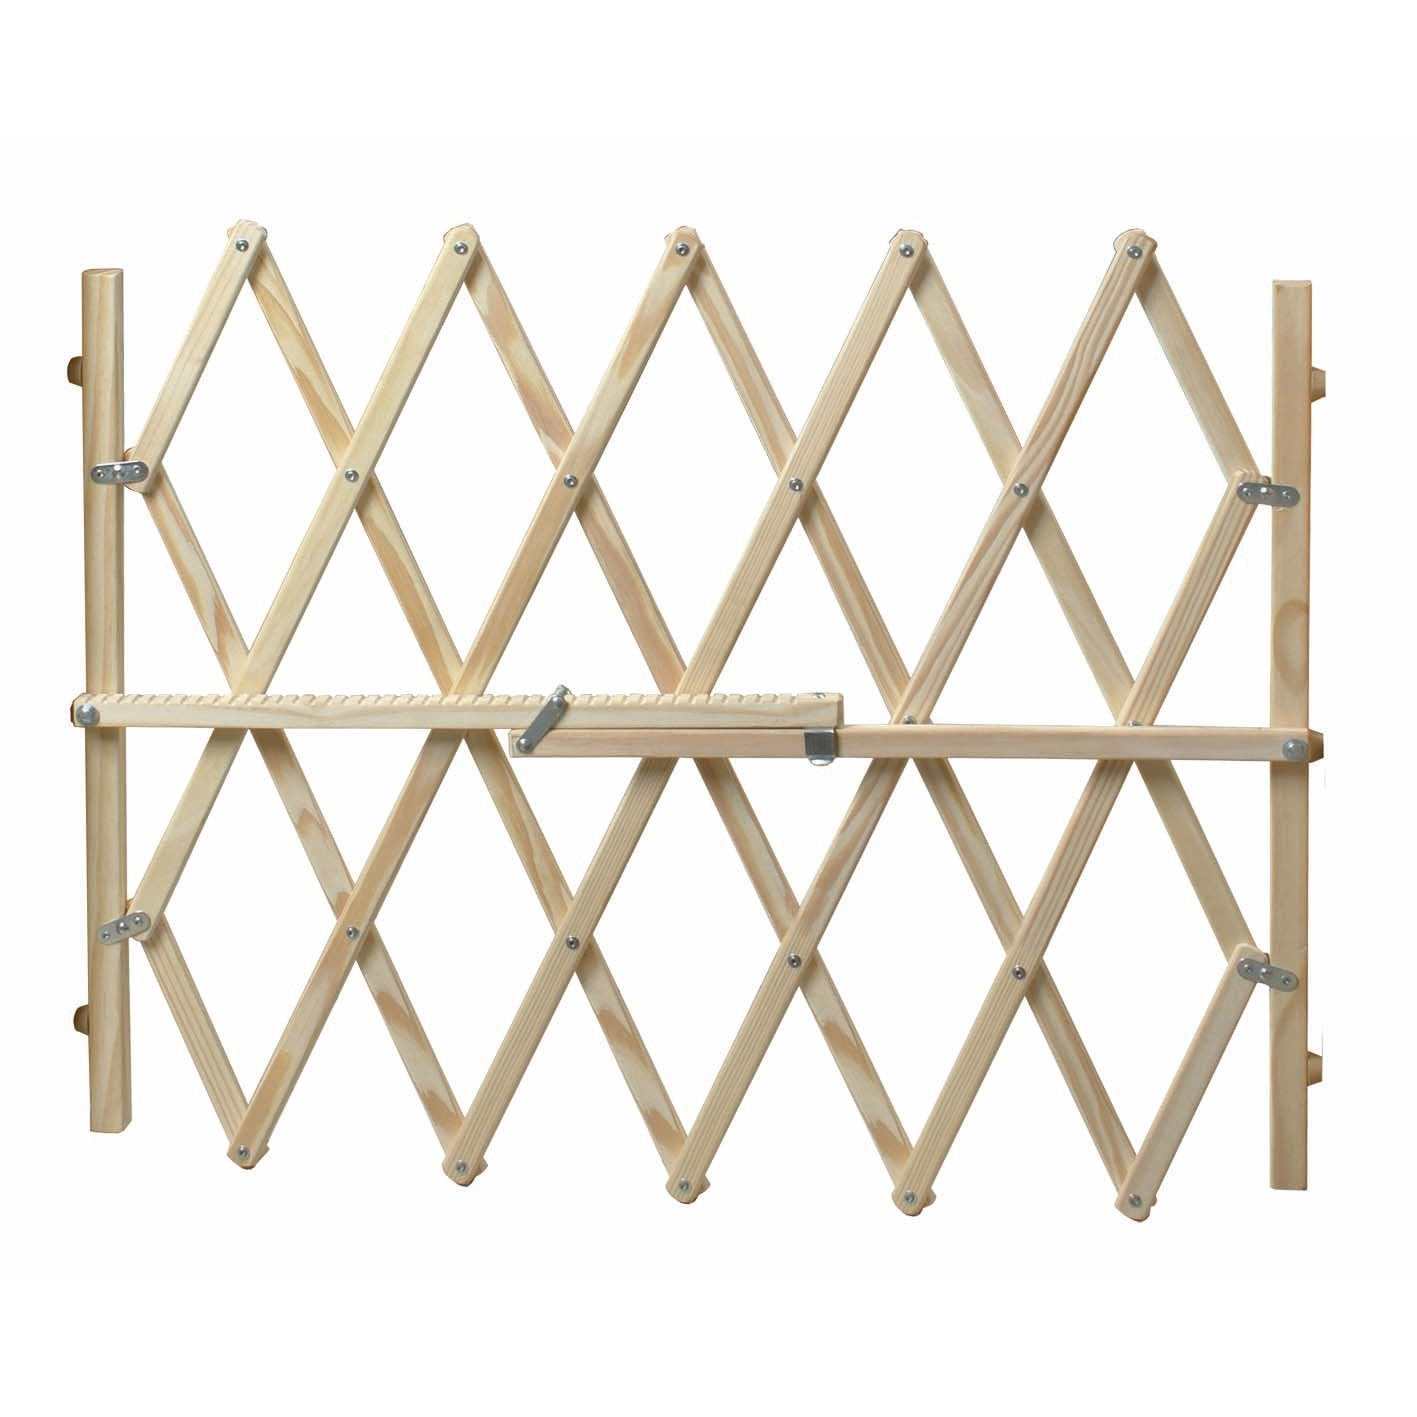 Barri re extensible animaux en bois naturel long min max for Barriere de piscine leroy merlin